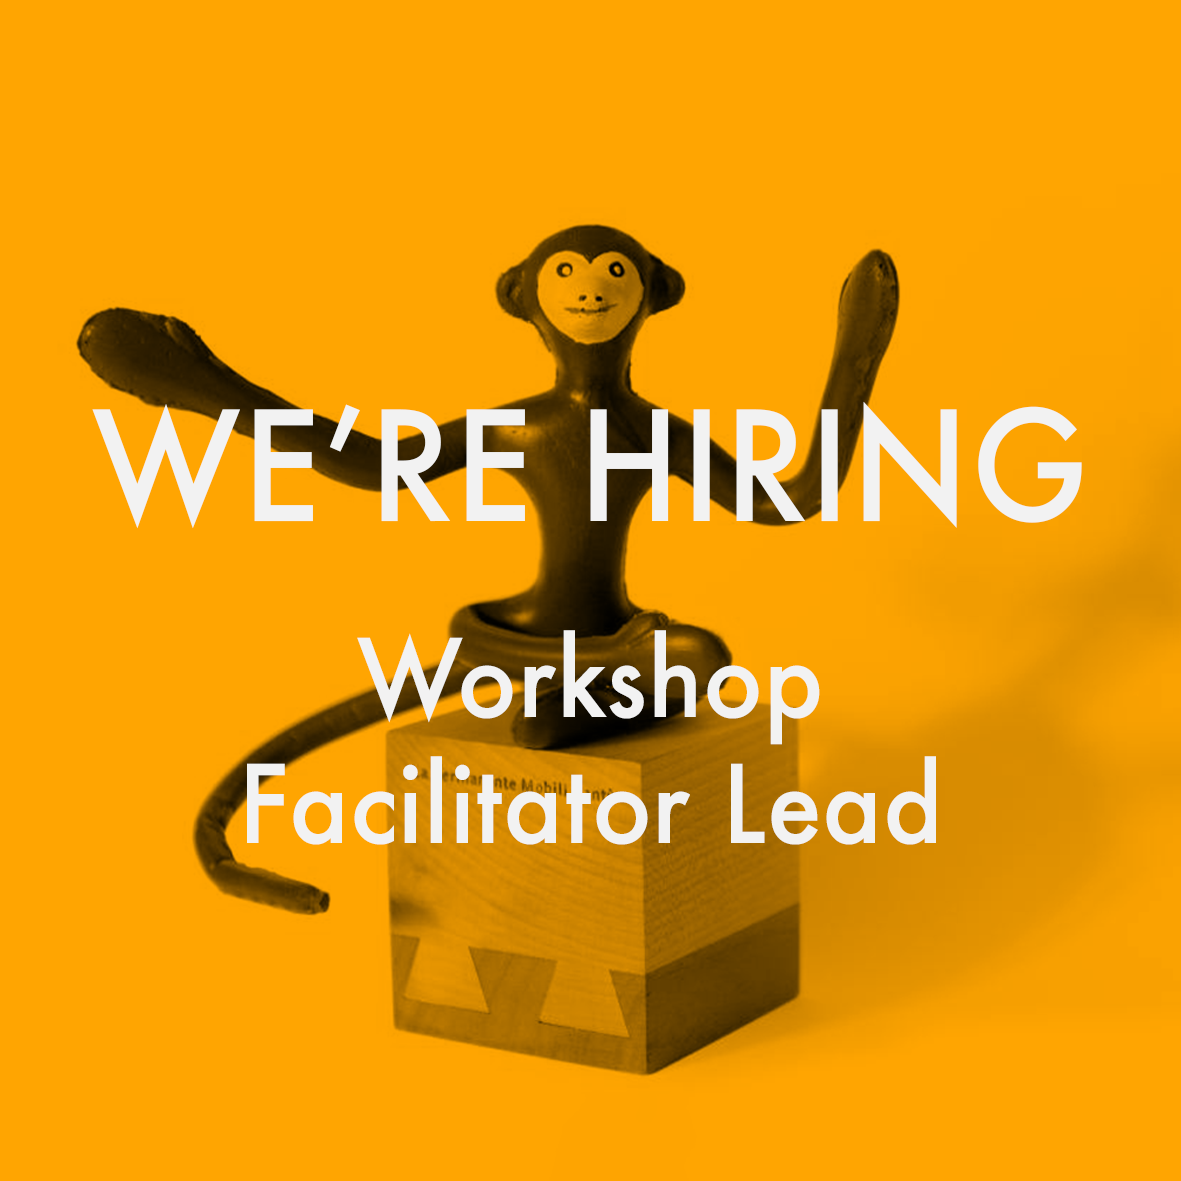 We're Hiring Workshop Facilitator Lead